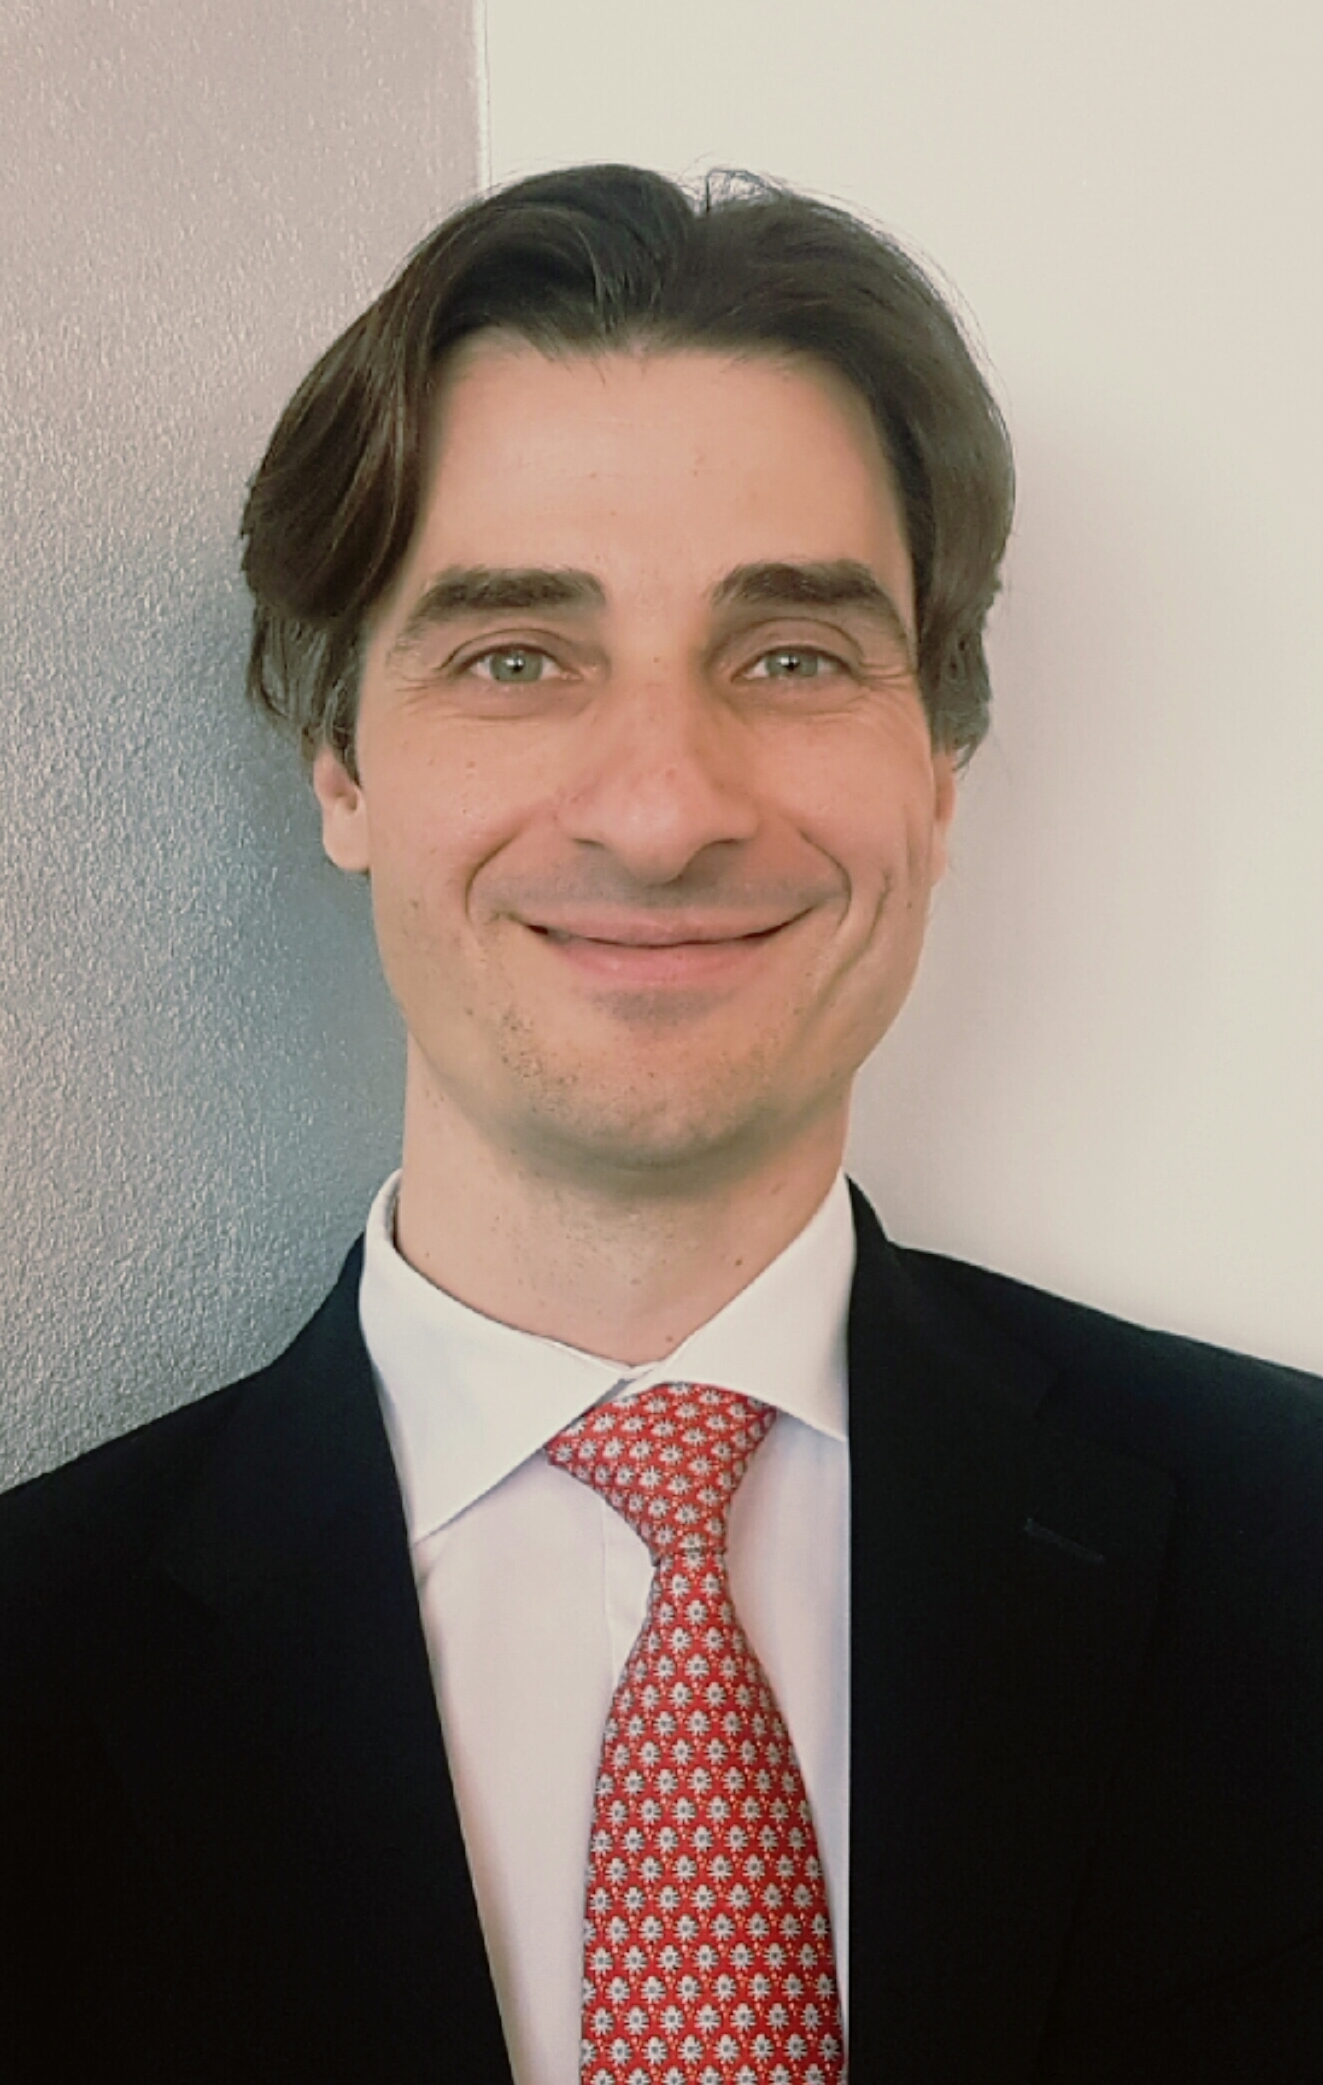 Fabio Carsenzuola, Chief Operating Officer di Europ Assistance Italia